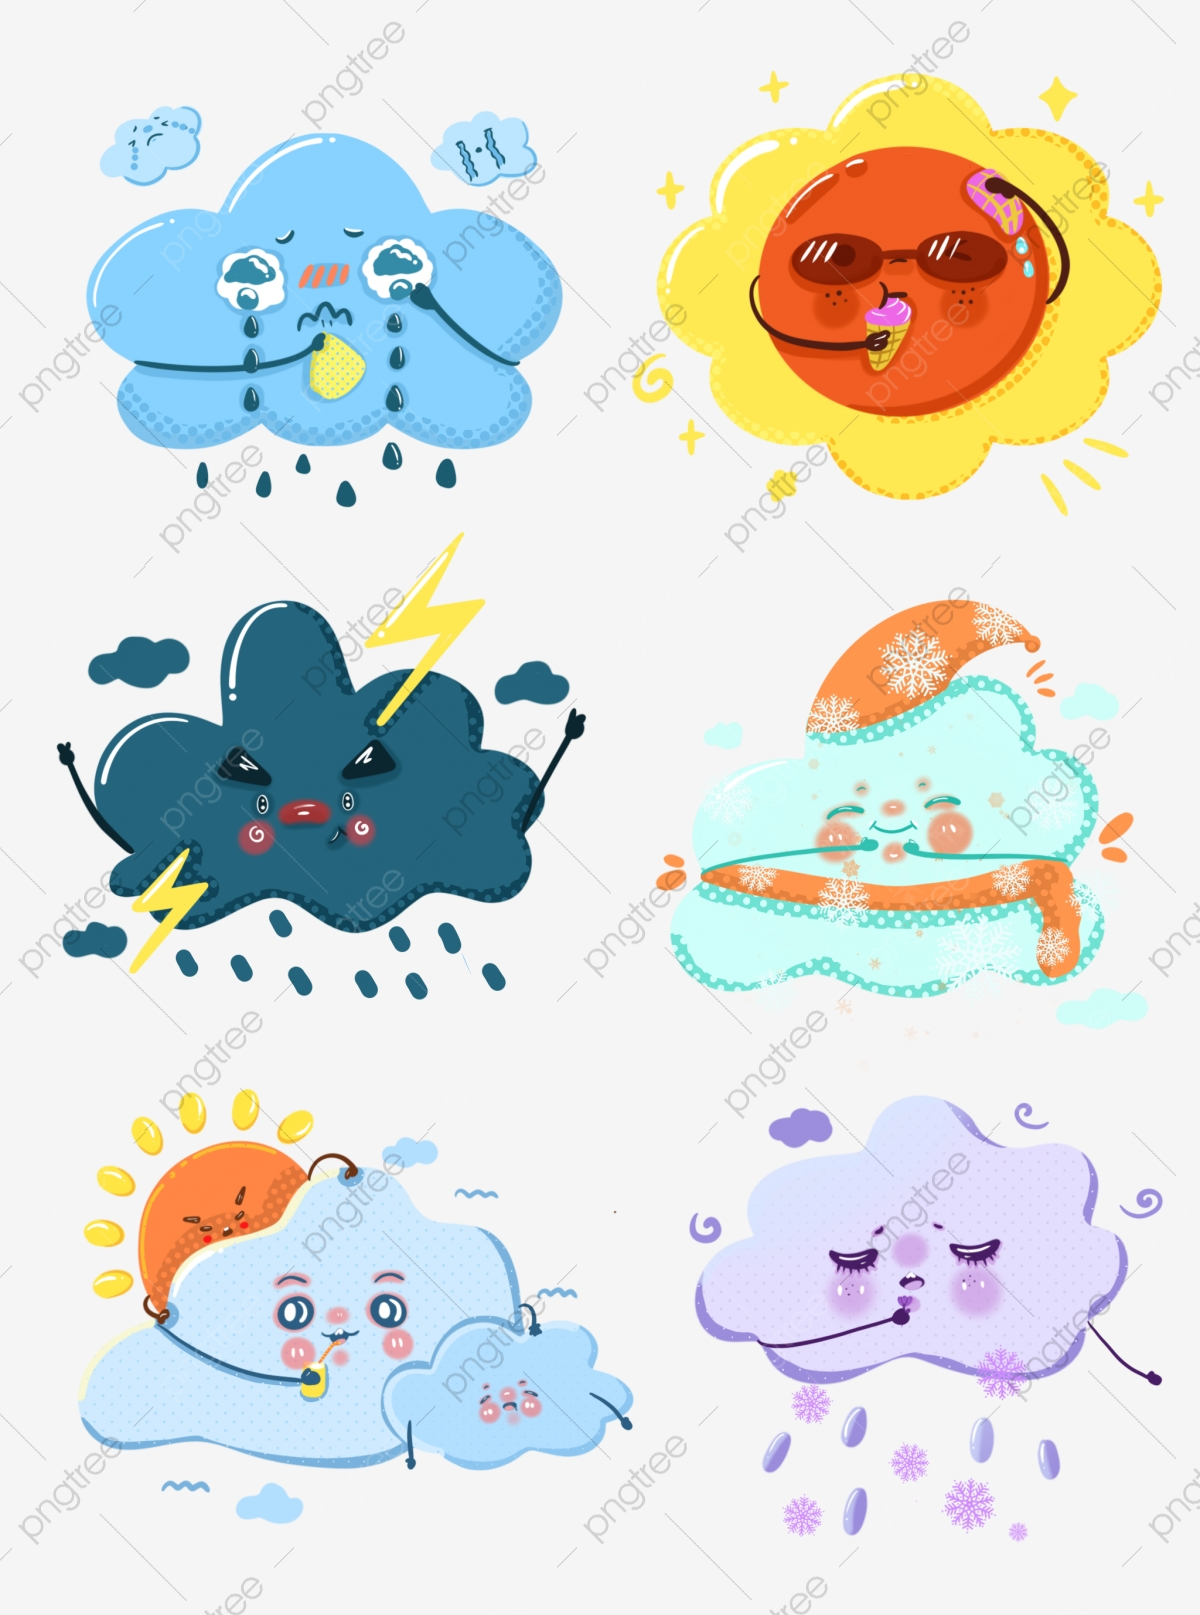 Cloudy Rainy Day Png - World Meteorological Day Weather Cartoon Image Sunny Rainy Day ...